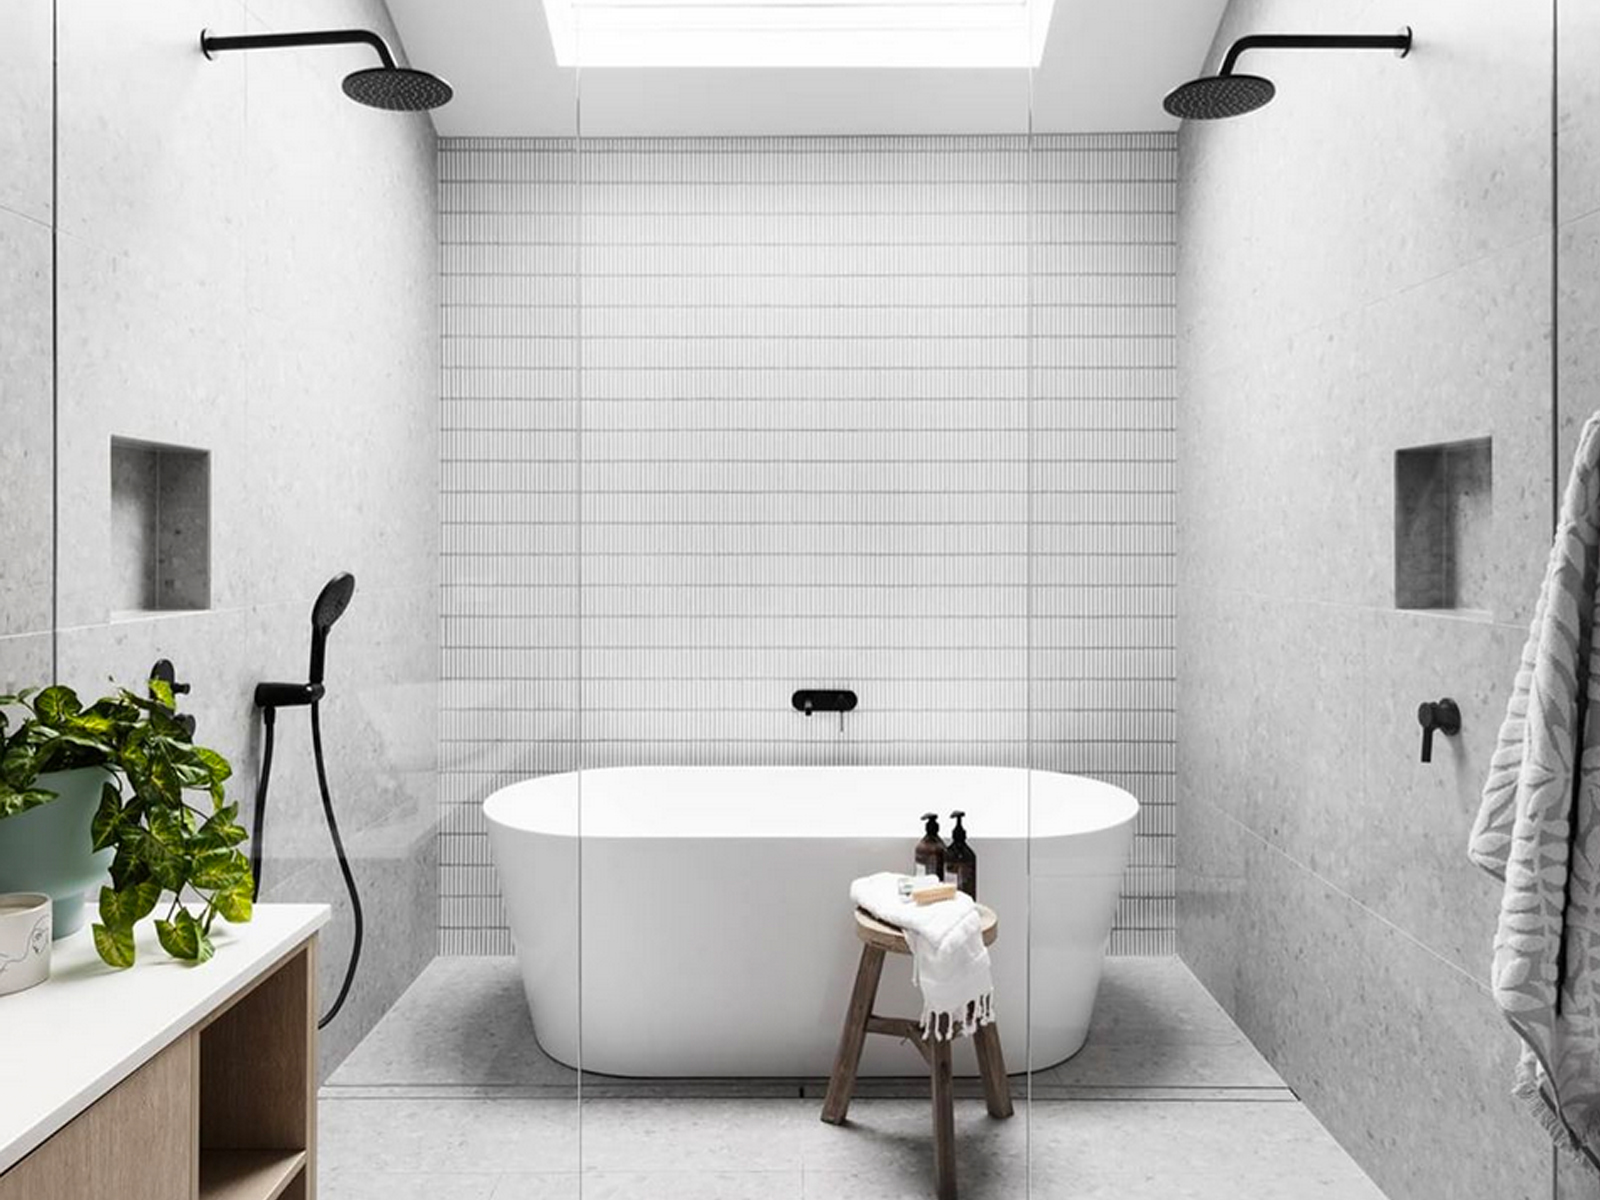 Cherie-Barber_Renovating-For-Profit_Small-Bathrooms-skylight